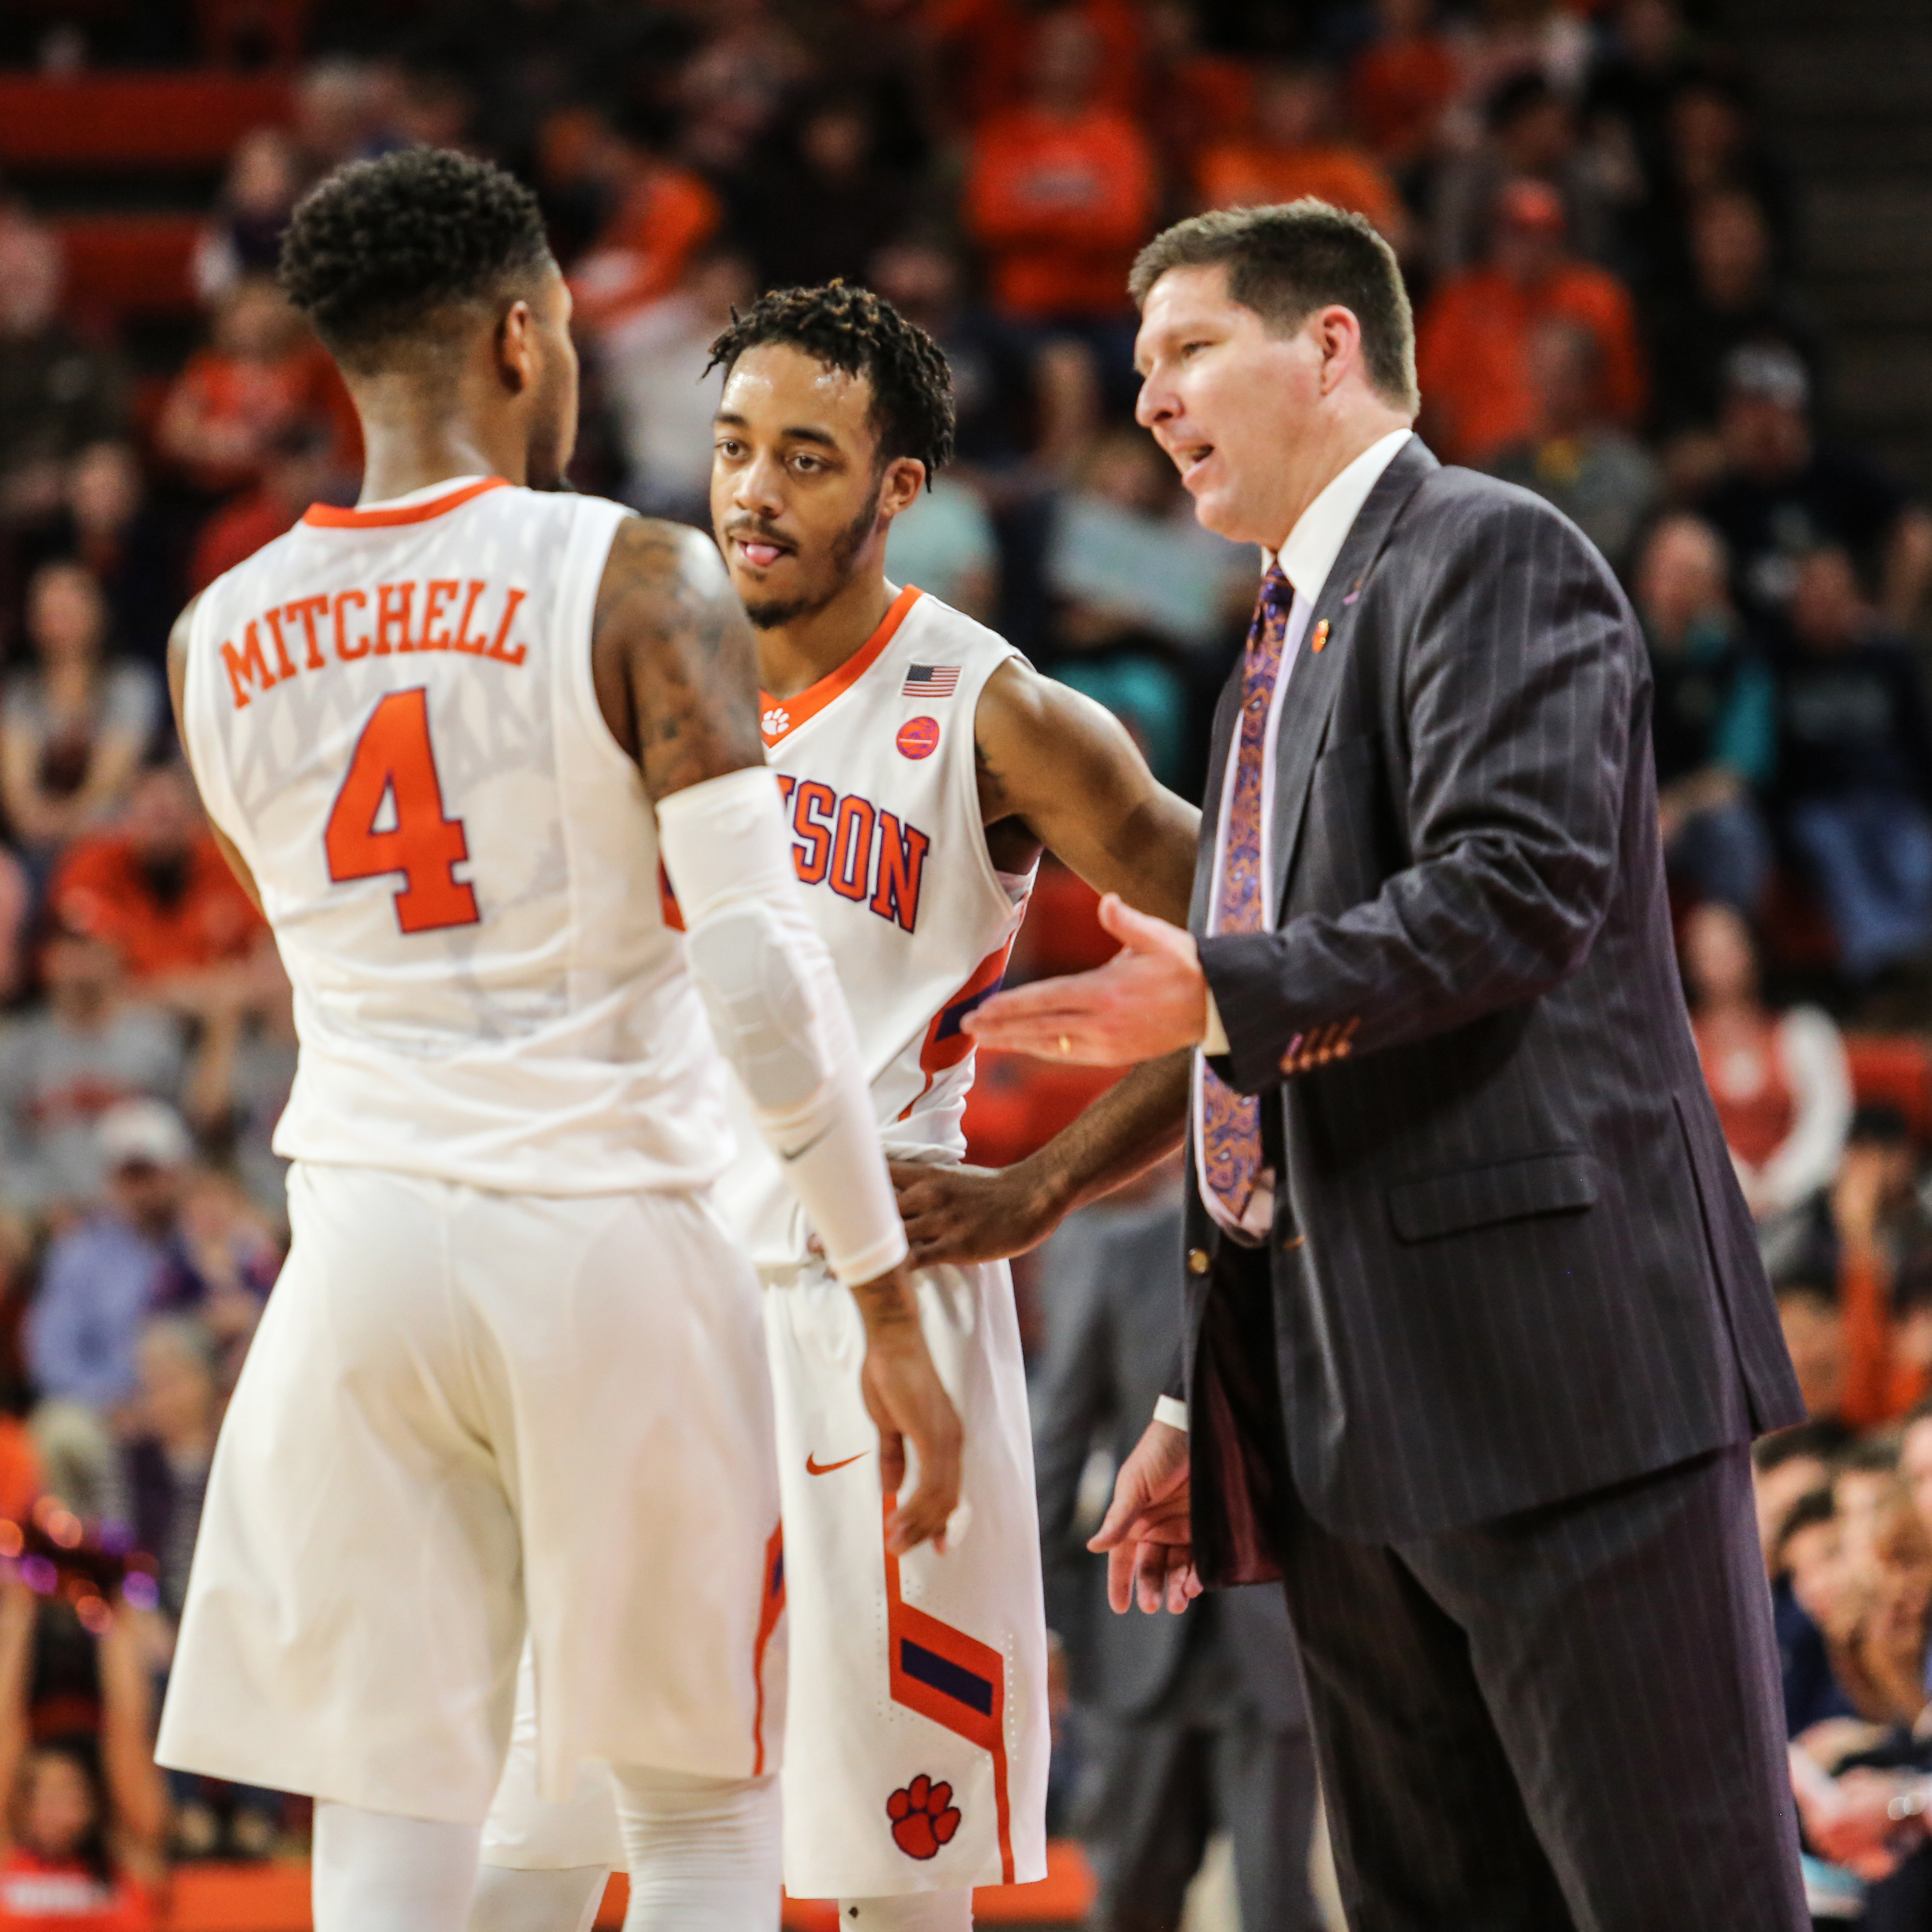 Clemson Conference Home Games Announced